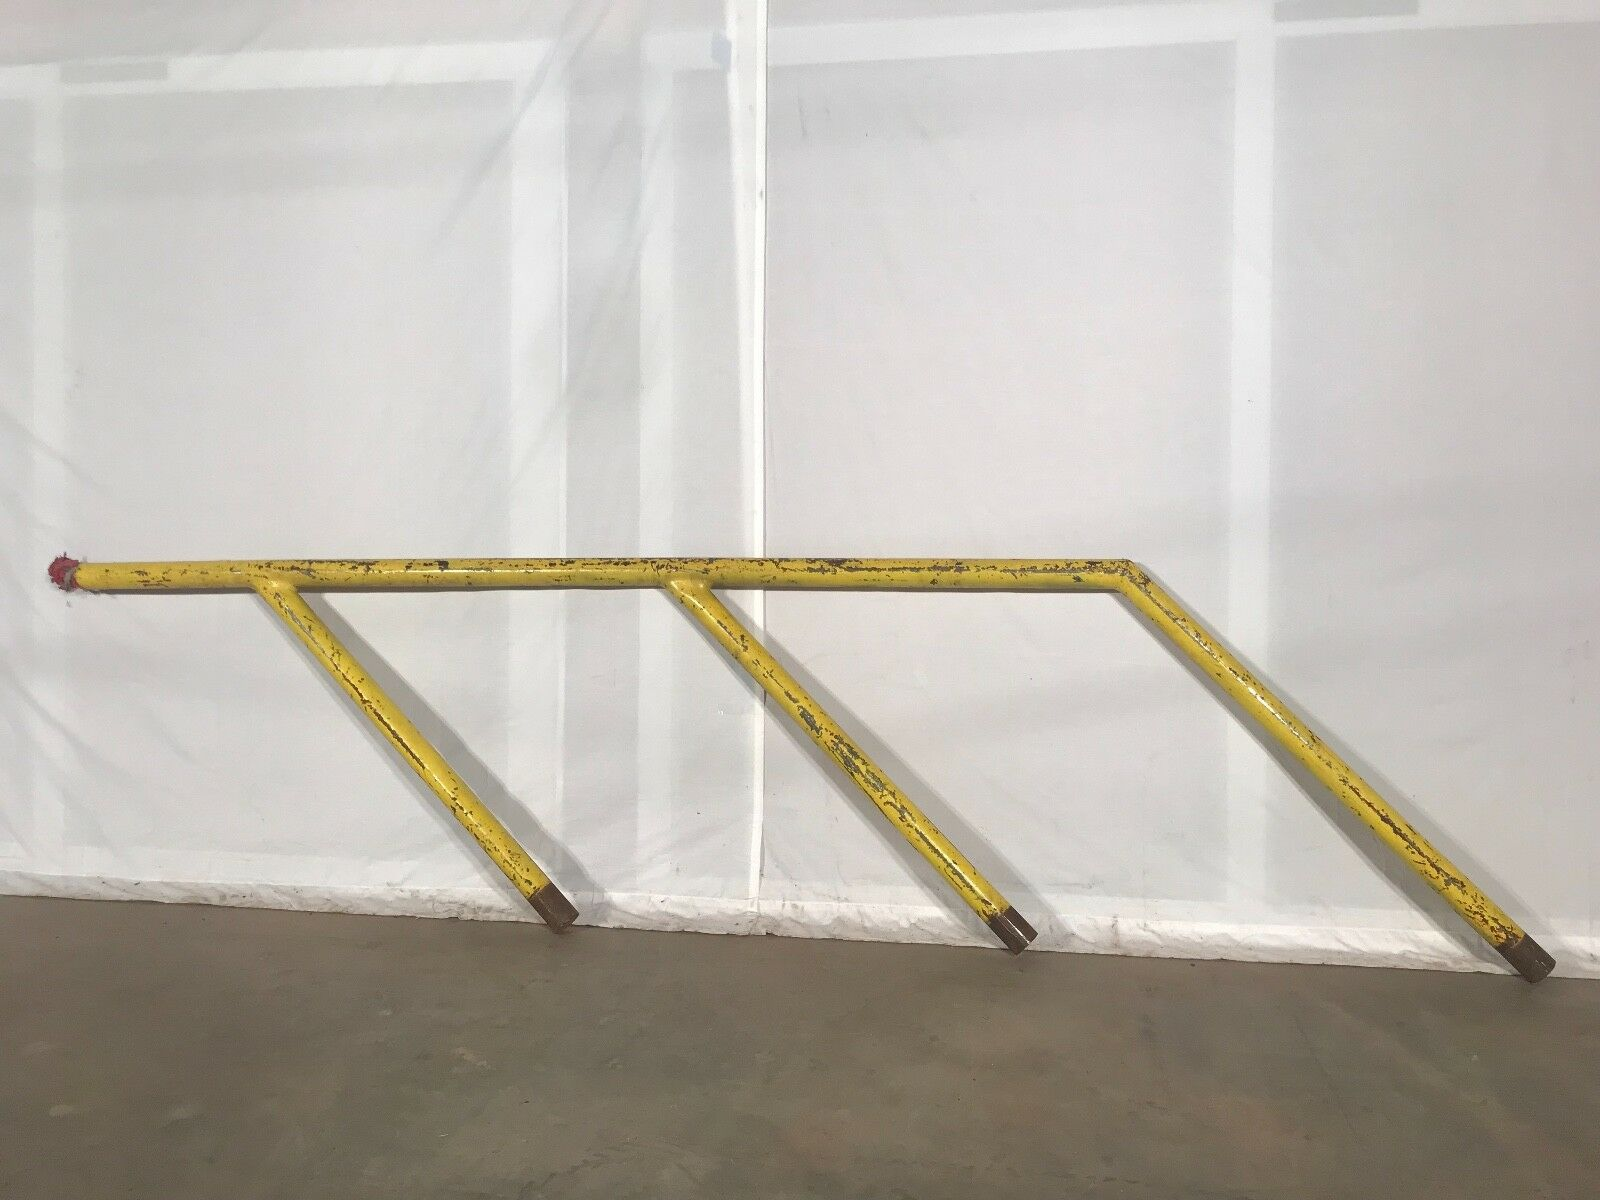 Steel Warehouse Handrail for Staircases or Mezzanines